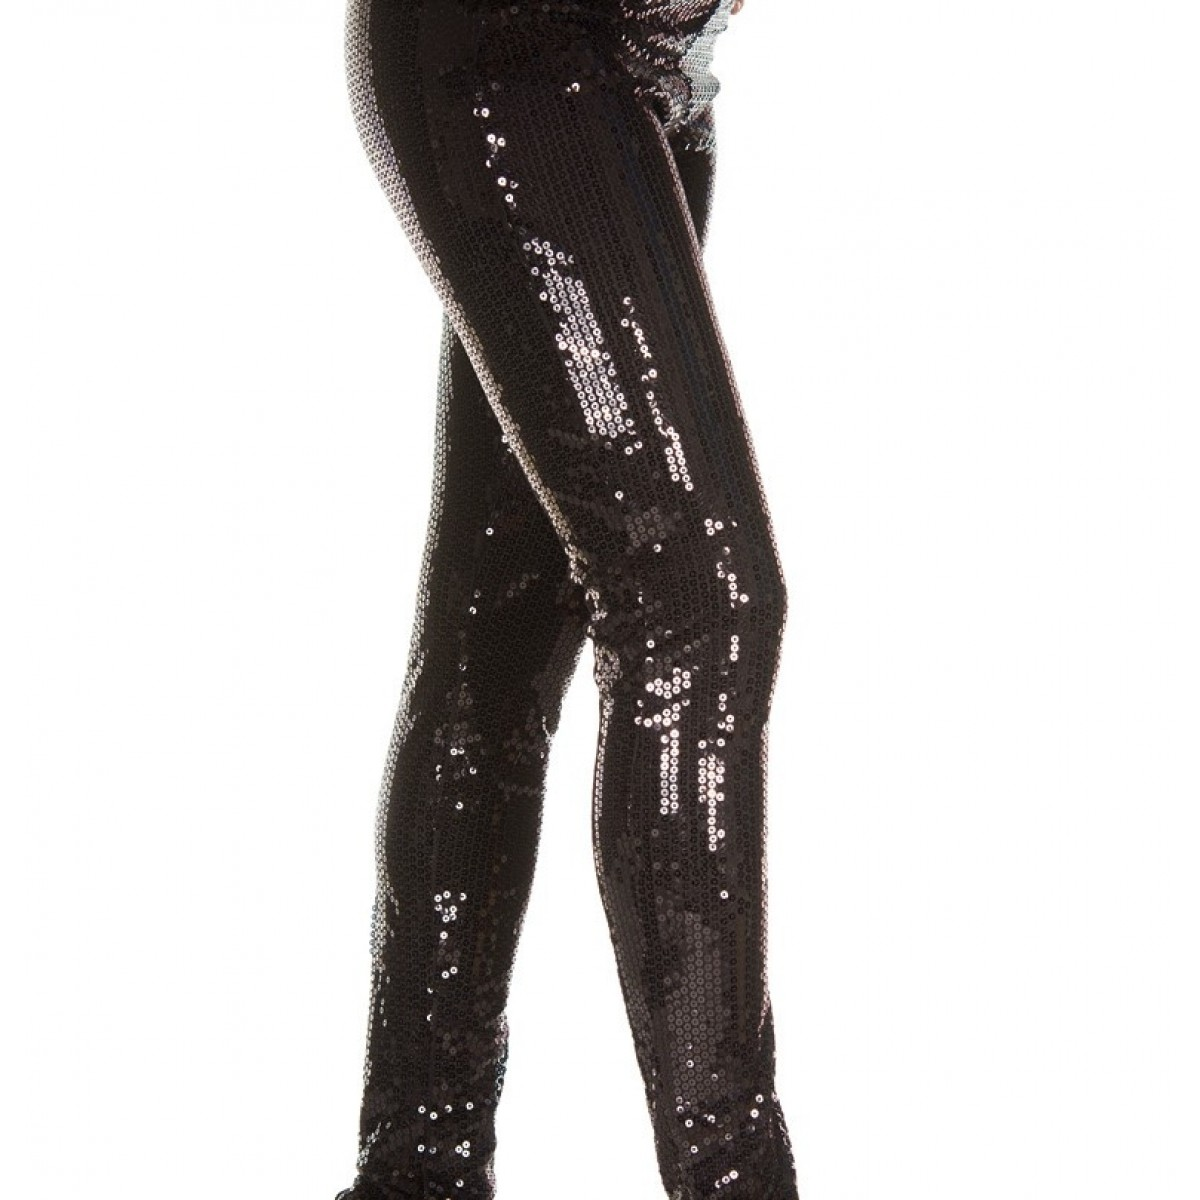 Black sequin leggings-01